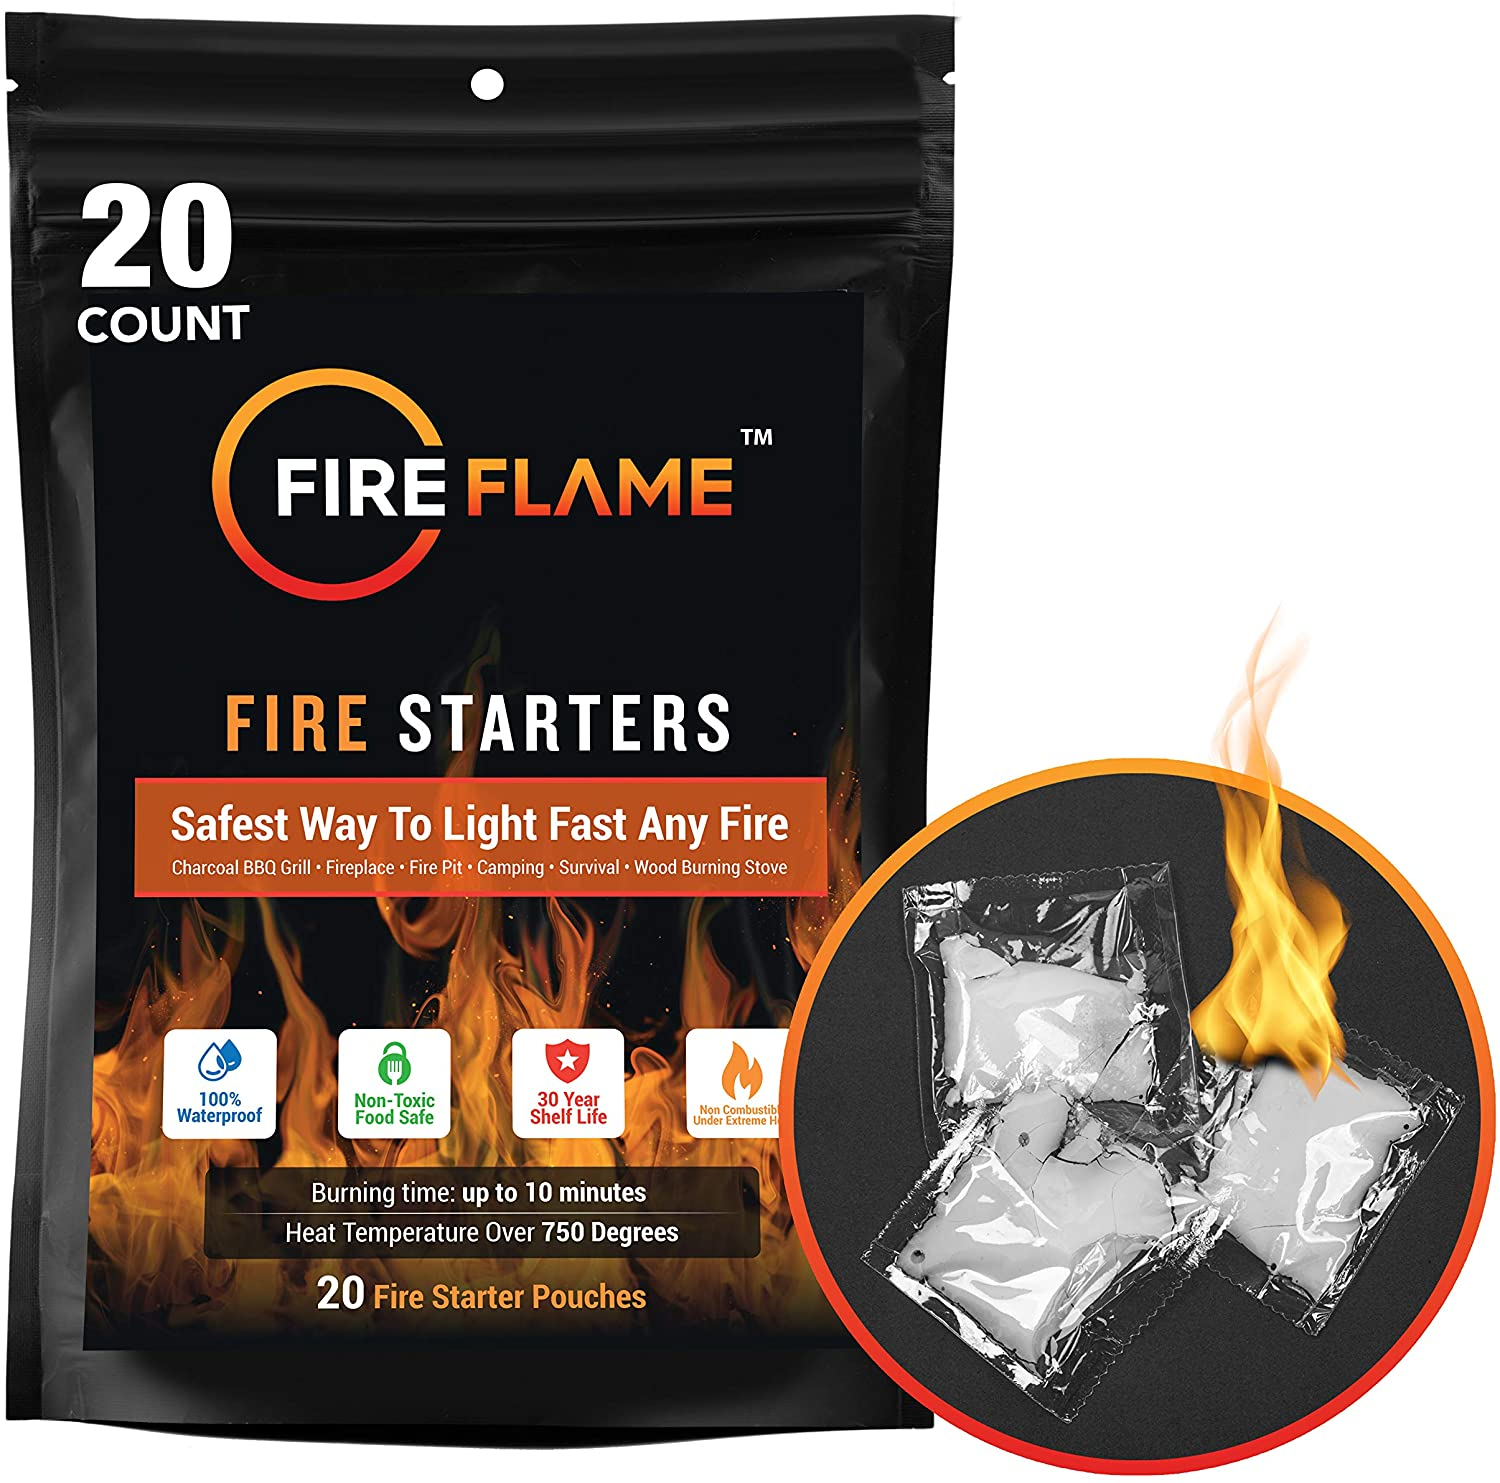 Fire Flame Pouches